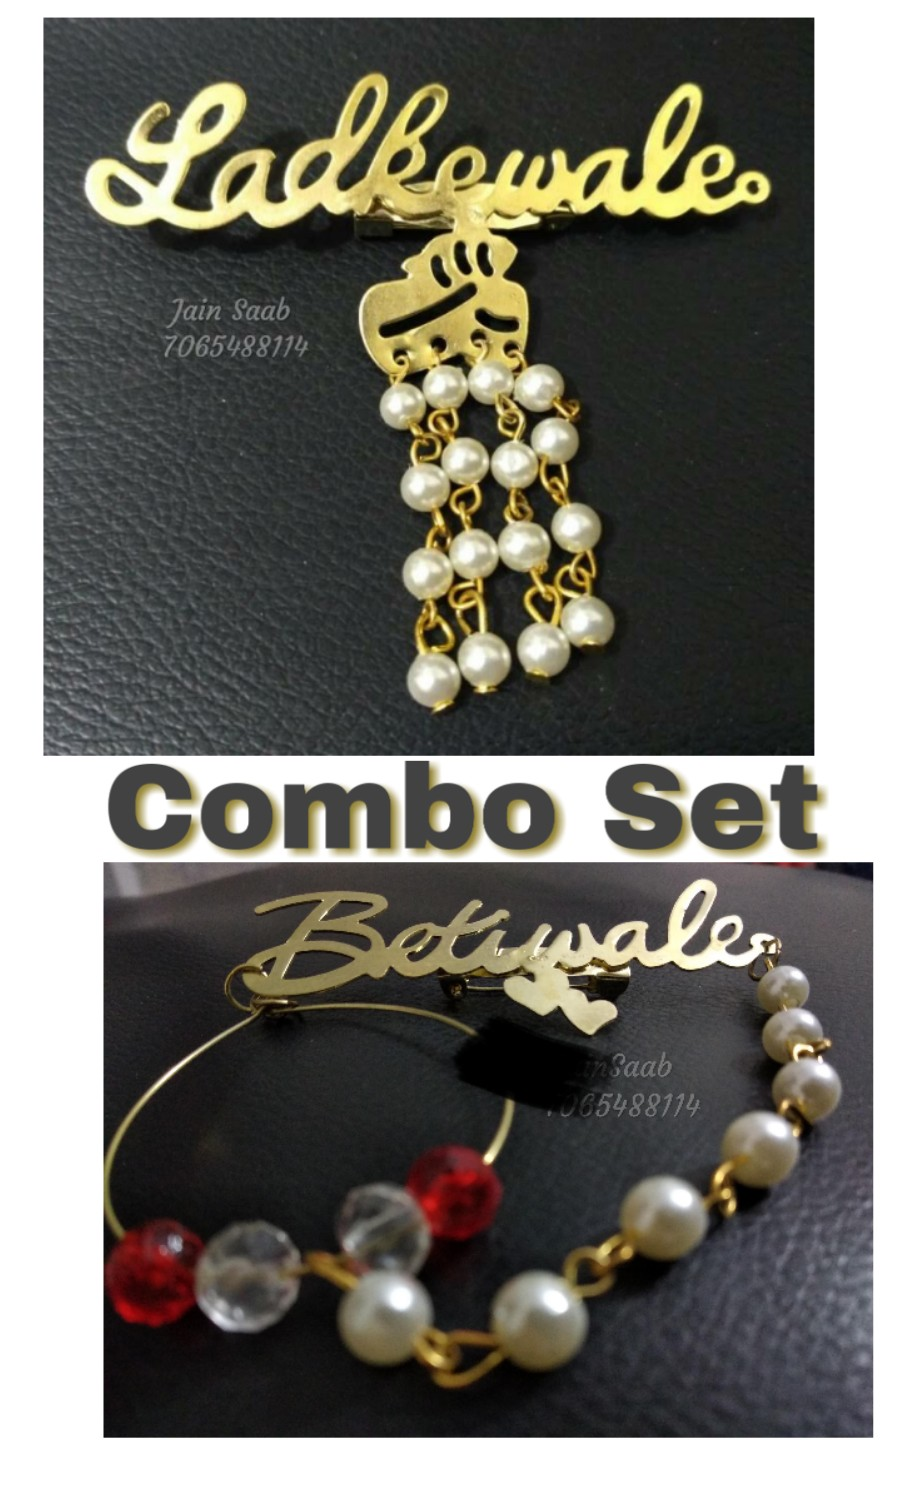 ladkewale 100pc and Betiwale Brooch 100 pc   Combo of 200 pcs